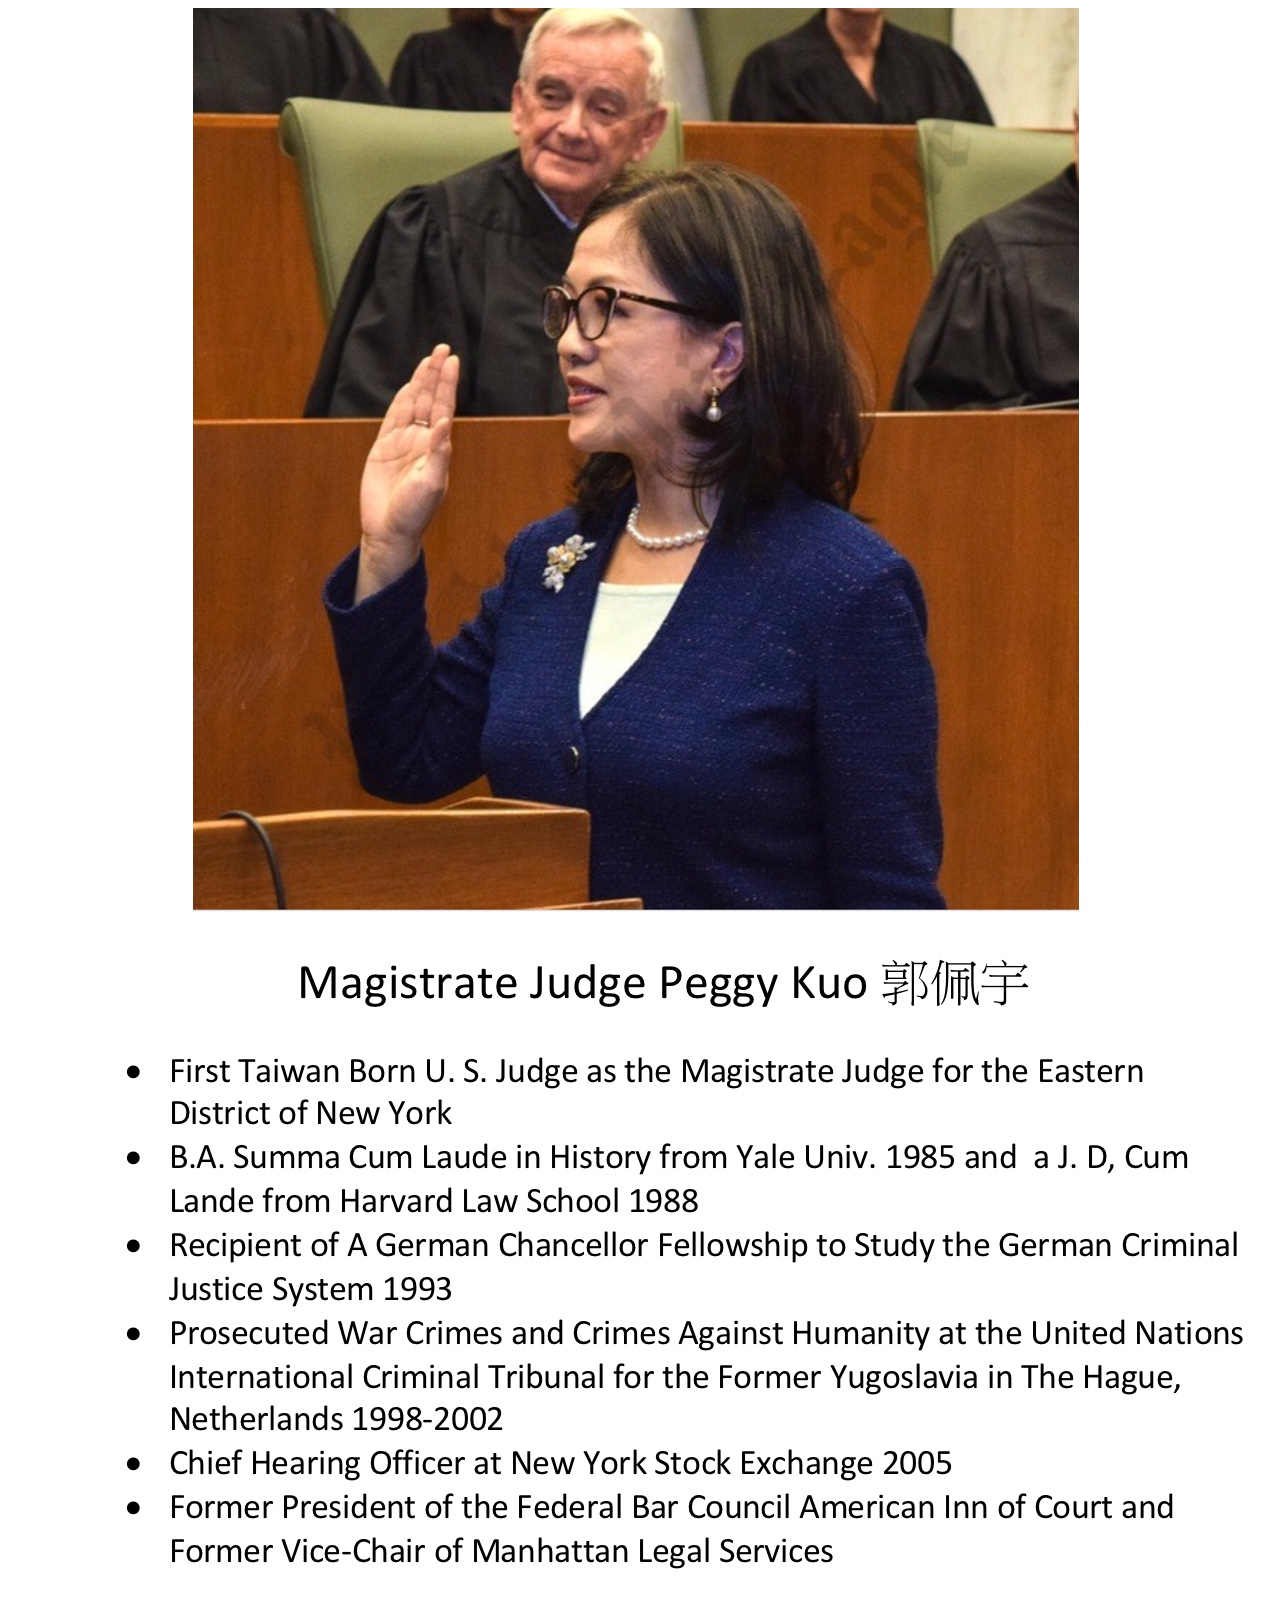 226. Magistrate Judge Peggy Kuo 郭佩宇